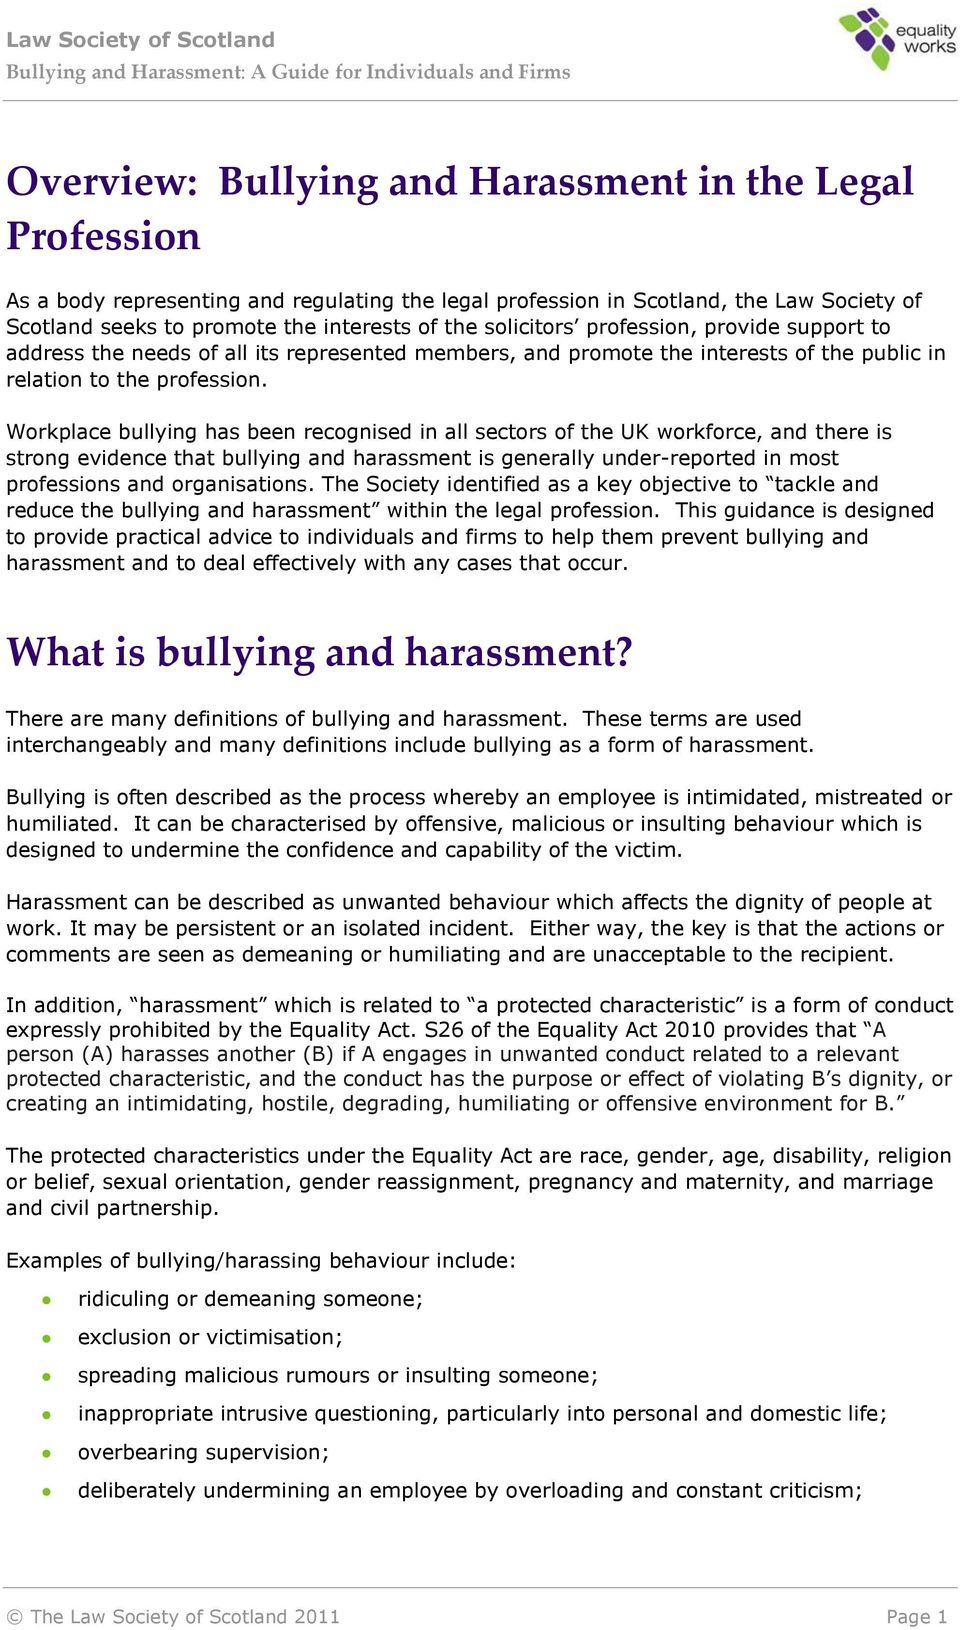 Workplace bullying has been recognised in all sectors of the UK workforce, and there is strong evidence that bullying and harassment is generally under-reported in most professions and organisations.